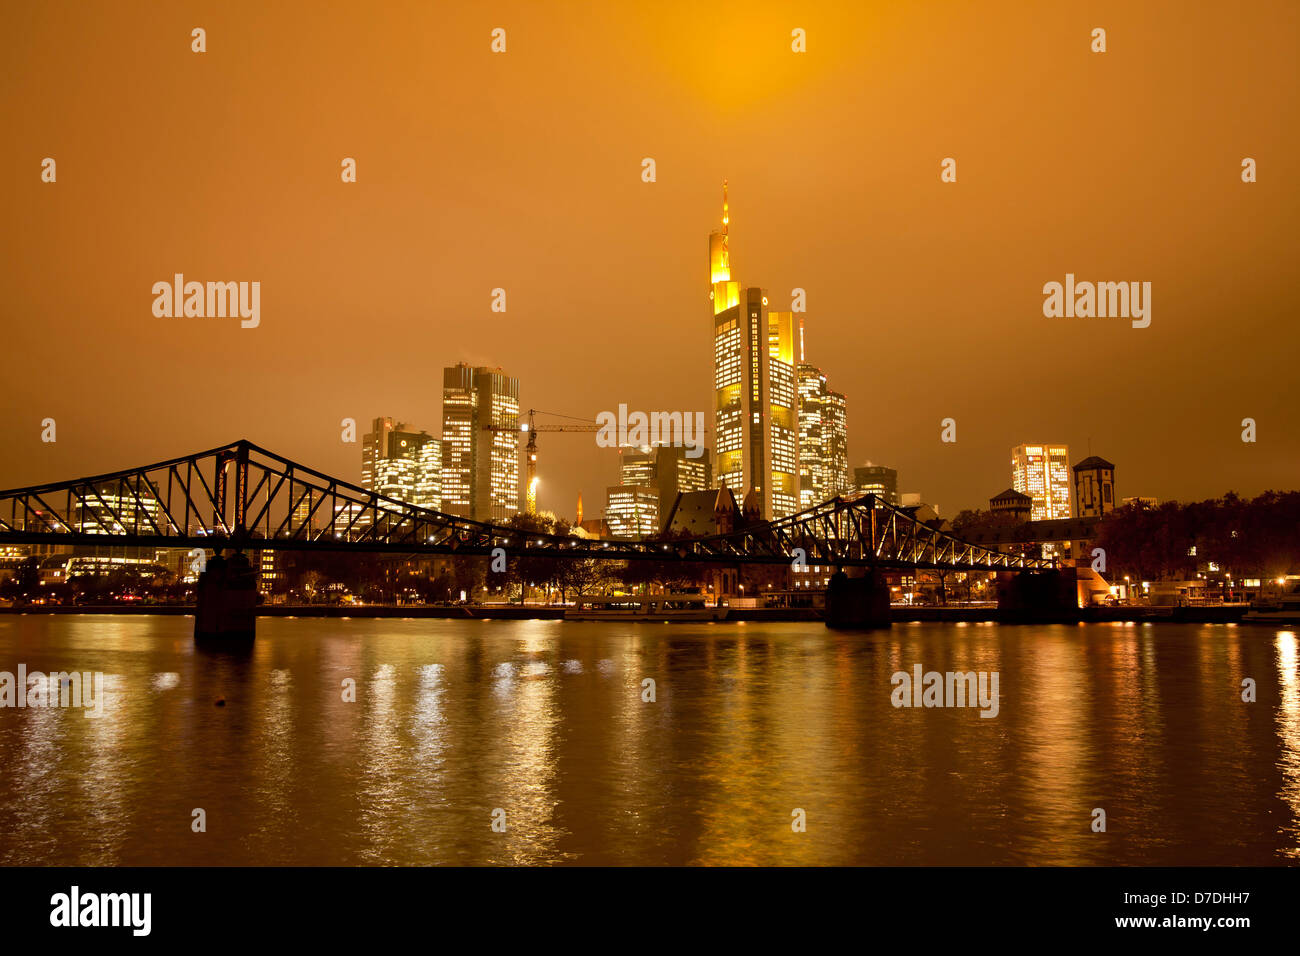 Eiserner Steg Bruecke, bridge over the Main river with the illuminated skyline of Frankfurt at dusk, Frankfurt am - Stock Image